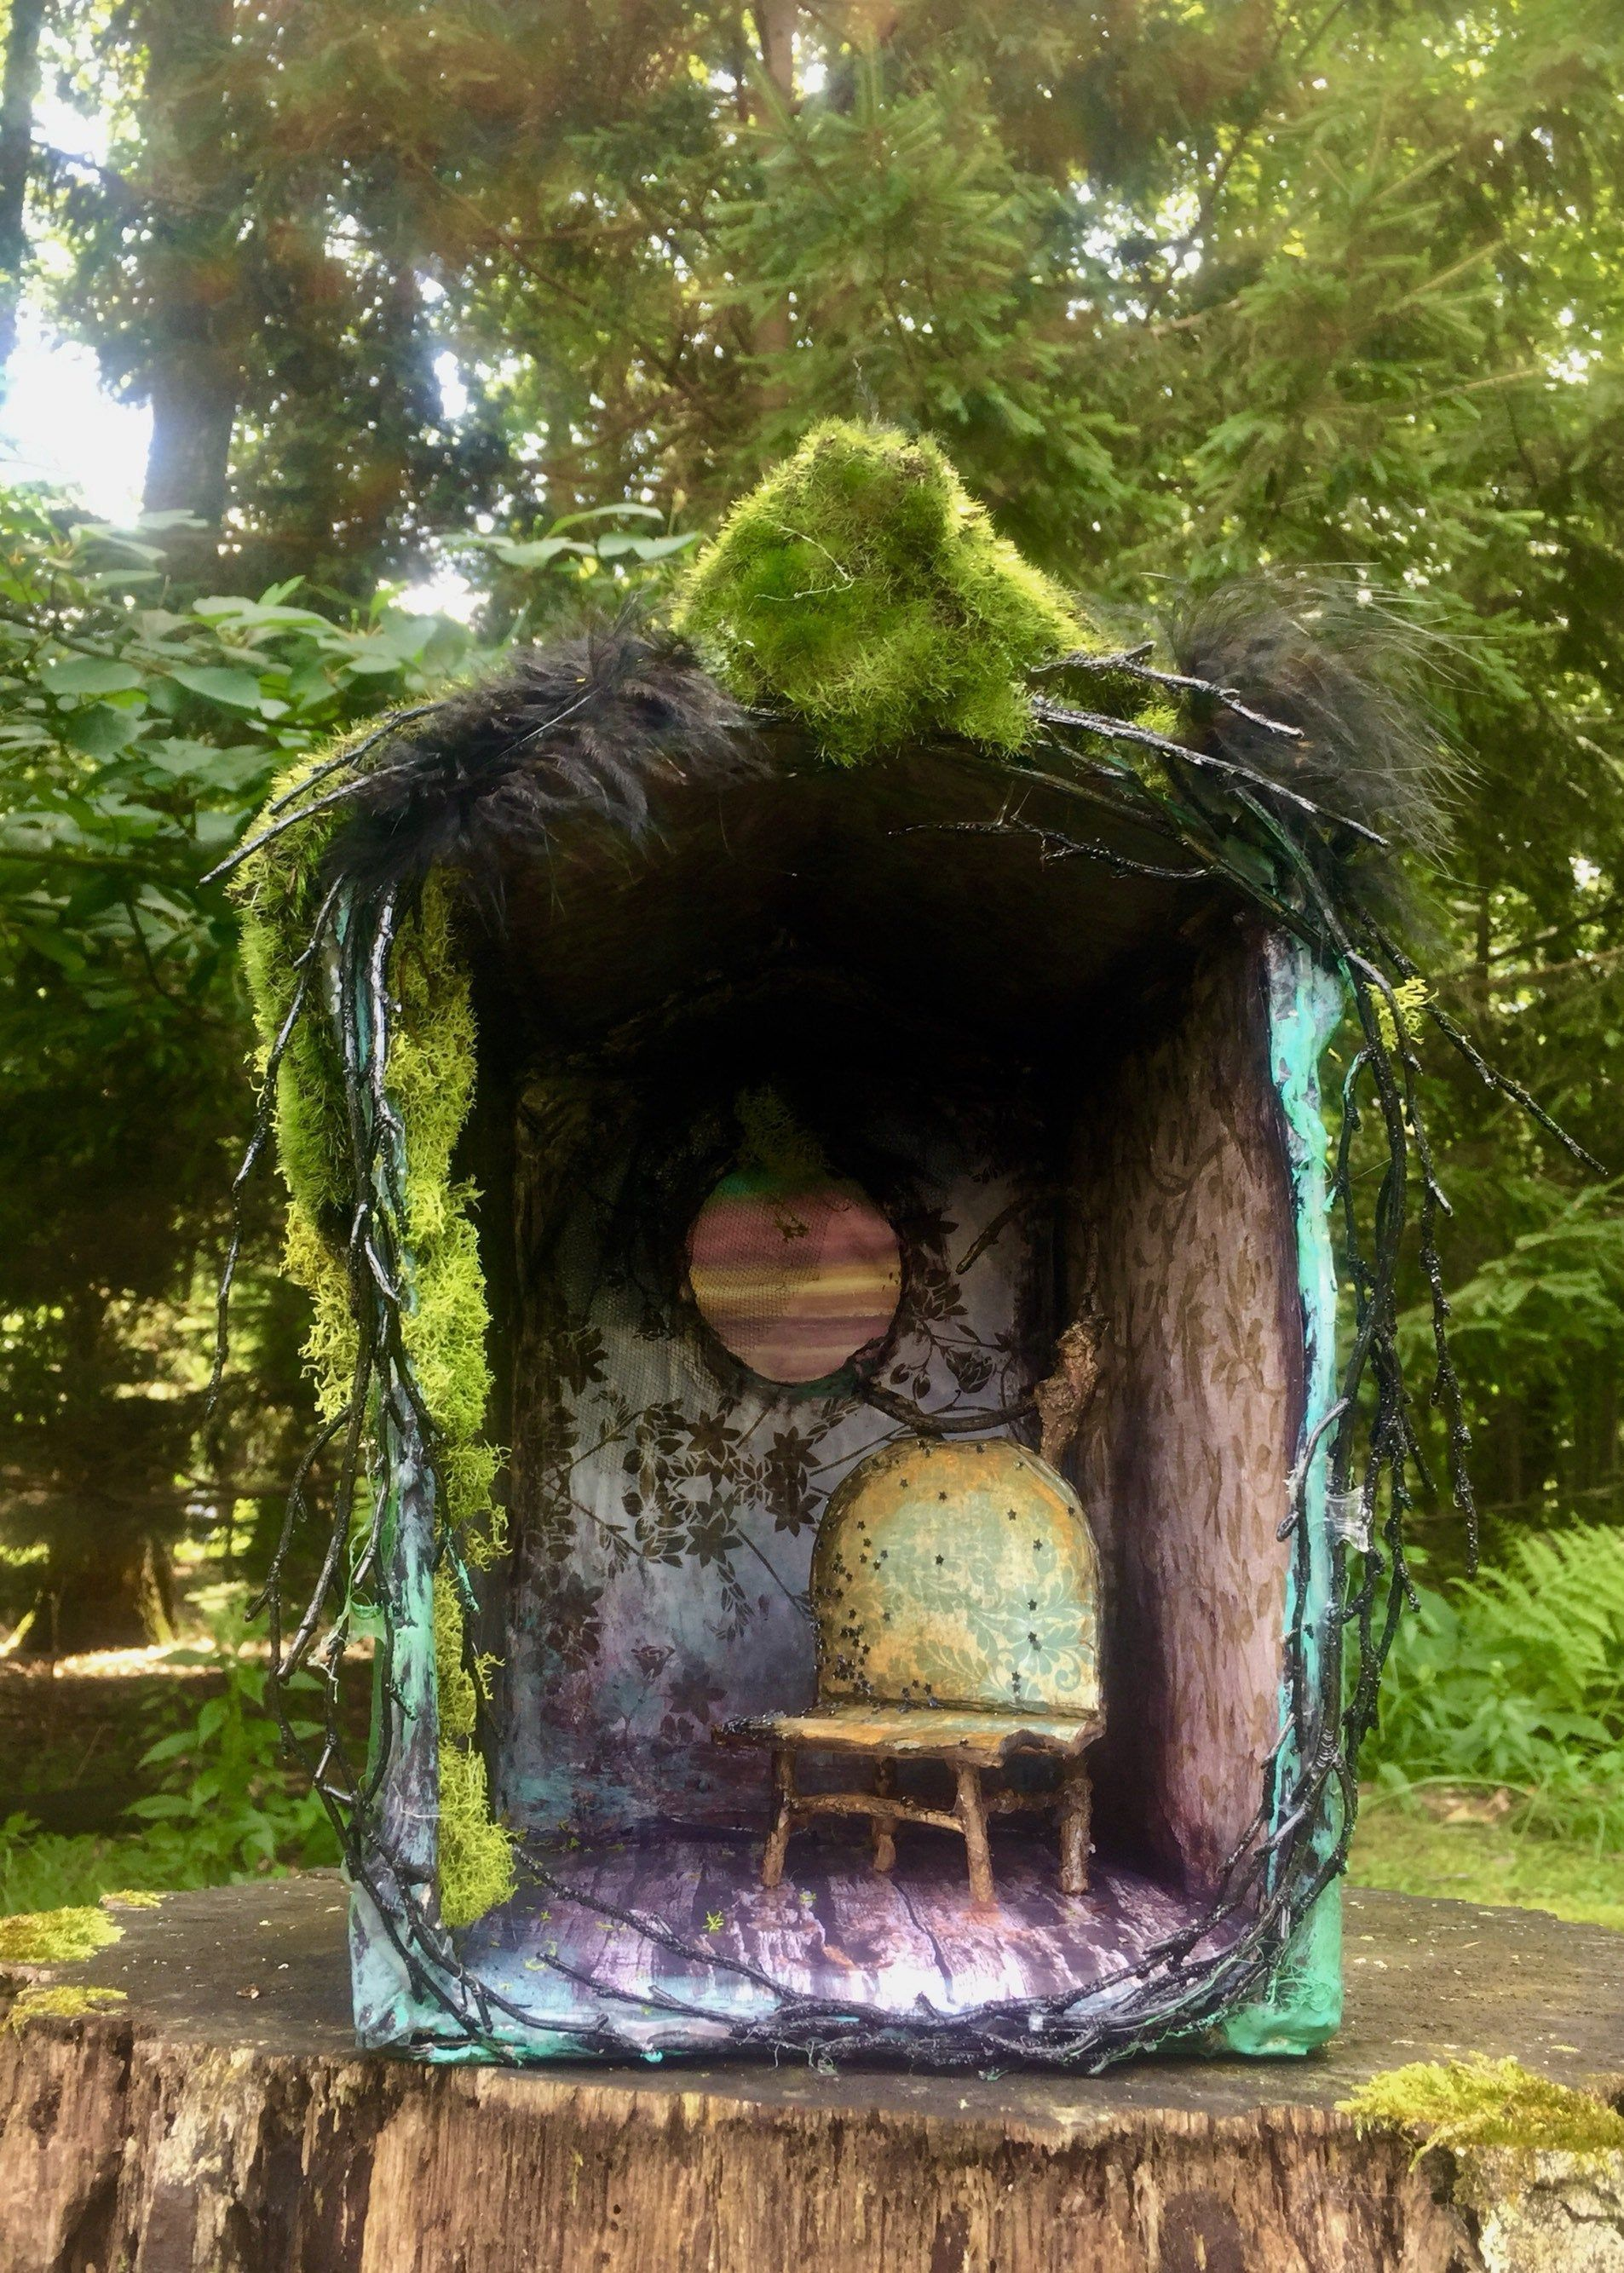 Hedge Witch Cottage-ooak whimsical one room fairy dollhouse #witchcottage Hedge Witch Cottage-ooak whimsical one room fairy dollhouse #witchcottage Hedge Witch Cottage-ooak whimsical one room fairy dollhouse #witchcottage Hedge Witch Cottage-ooak whimsical one room fairy dollhouse #witchcottage Hedge Witch Cottage-ooak whimsical one room fairy dollhouse #witchcottage Hedge Witch Cottage-ooak whimsical one room fairy dollhouse #witchcottage Hedge Witch Cottage-ooak whimsical one room fairy dollho #witchcottage